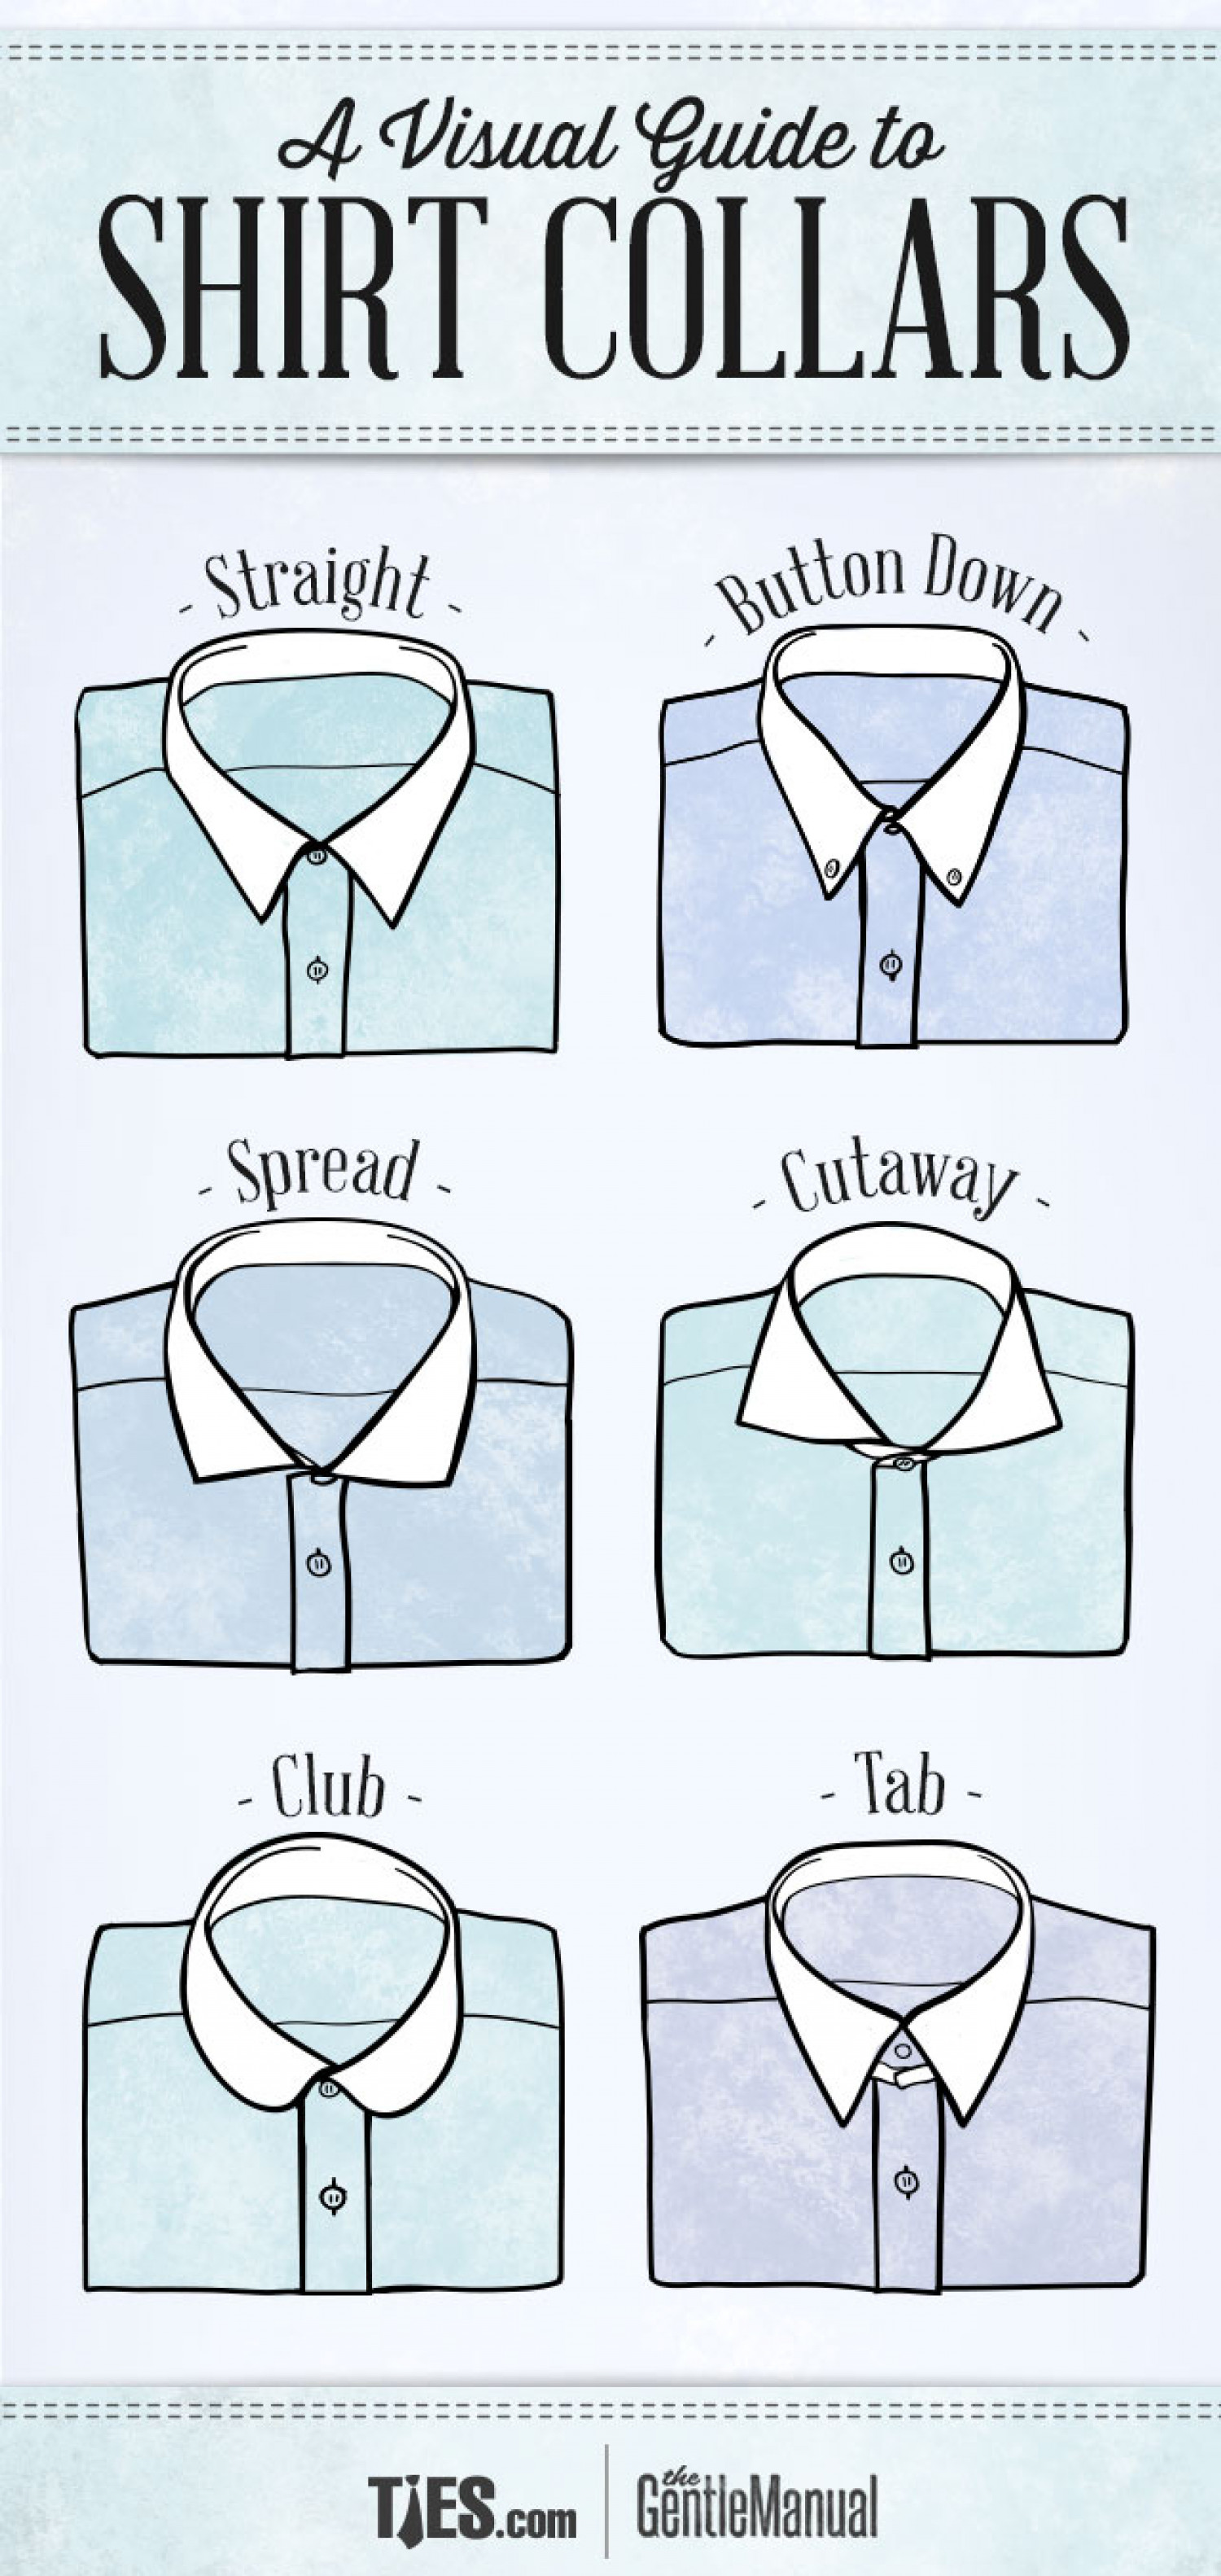 A Visual Guide To Shirt Collars Infographic